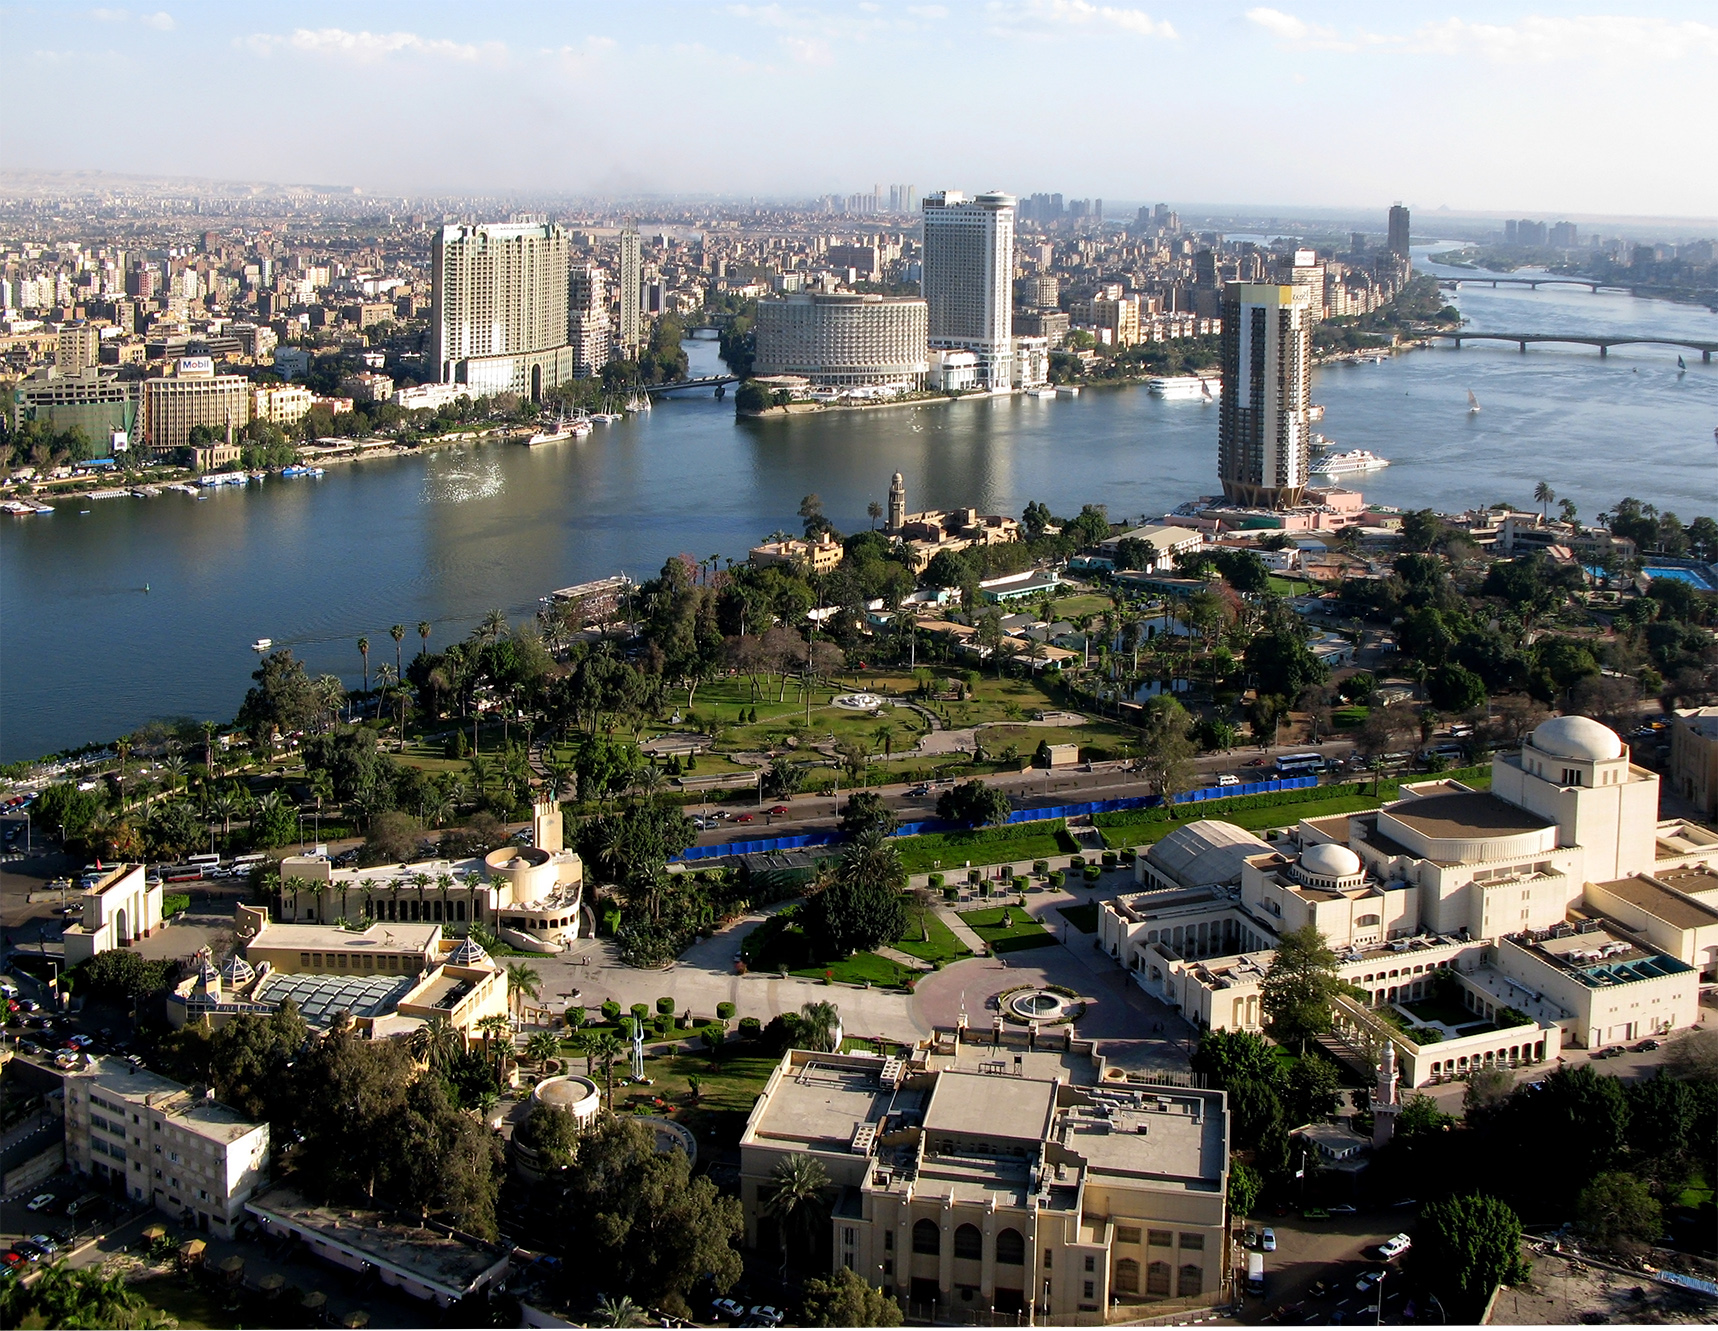 Cairo, the capital of Egypt, a Hot Vacation Destination